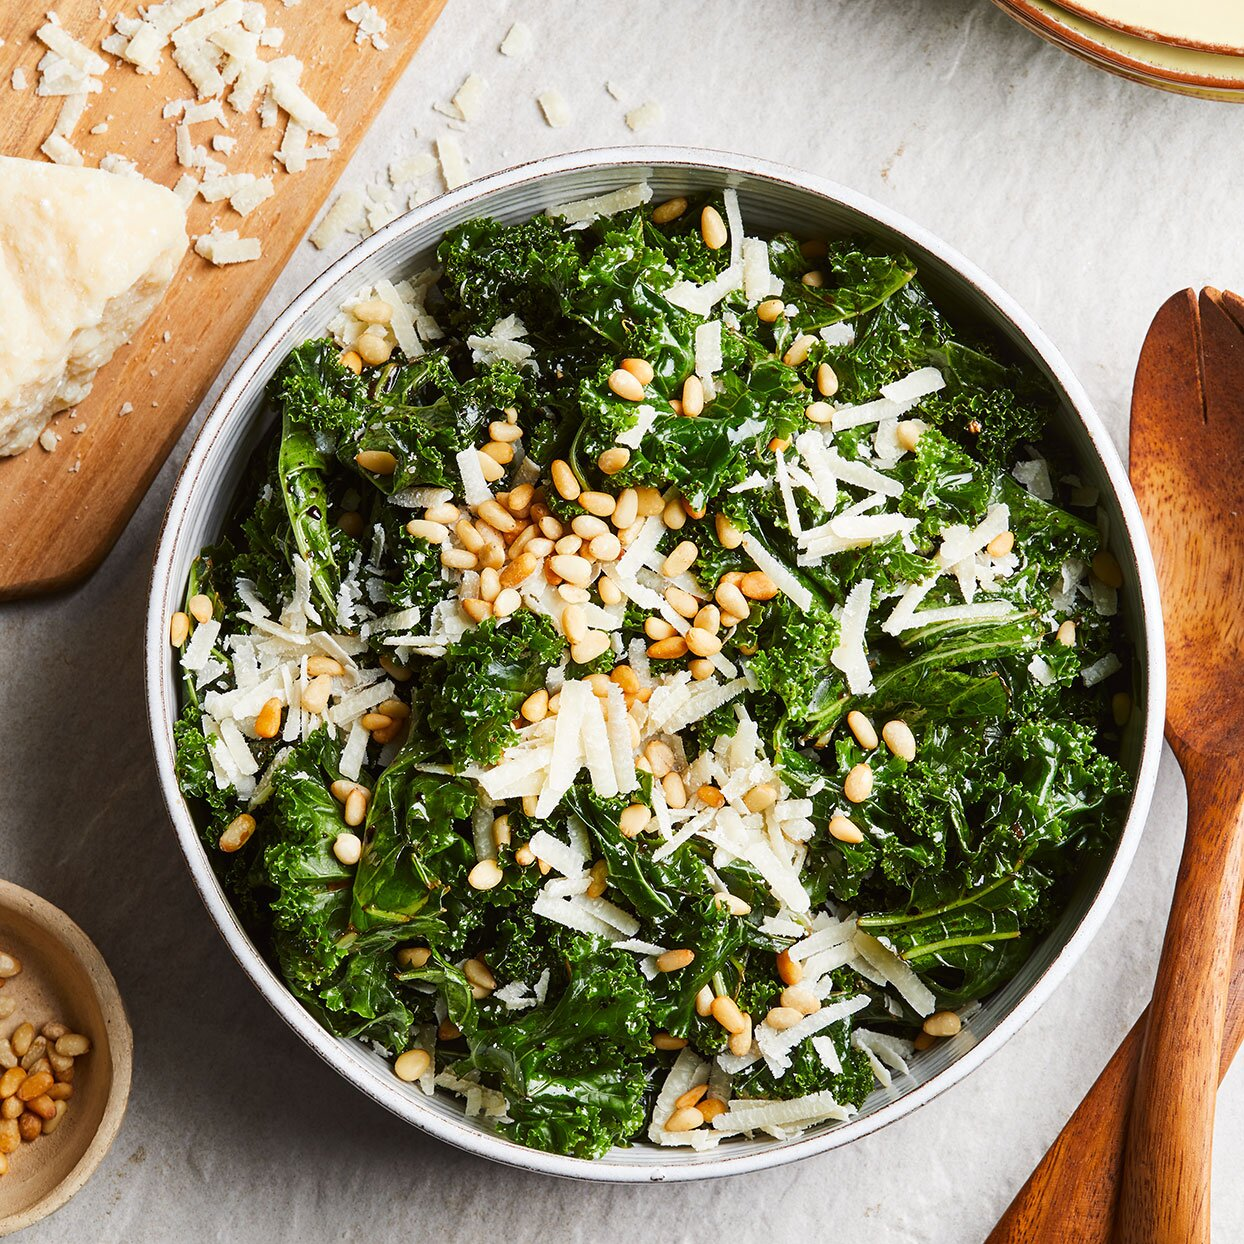 Kale Salad with Balsamic & Parmesan